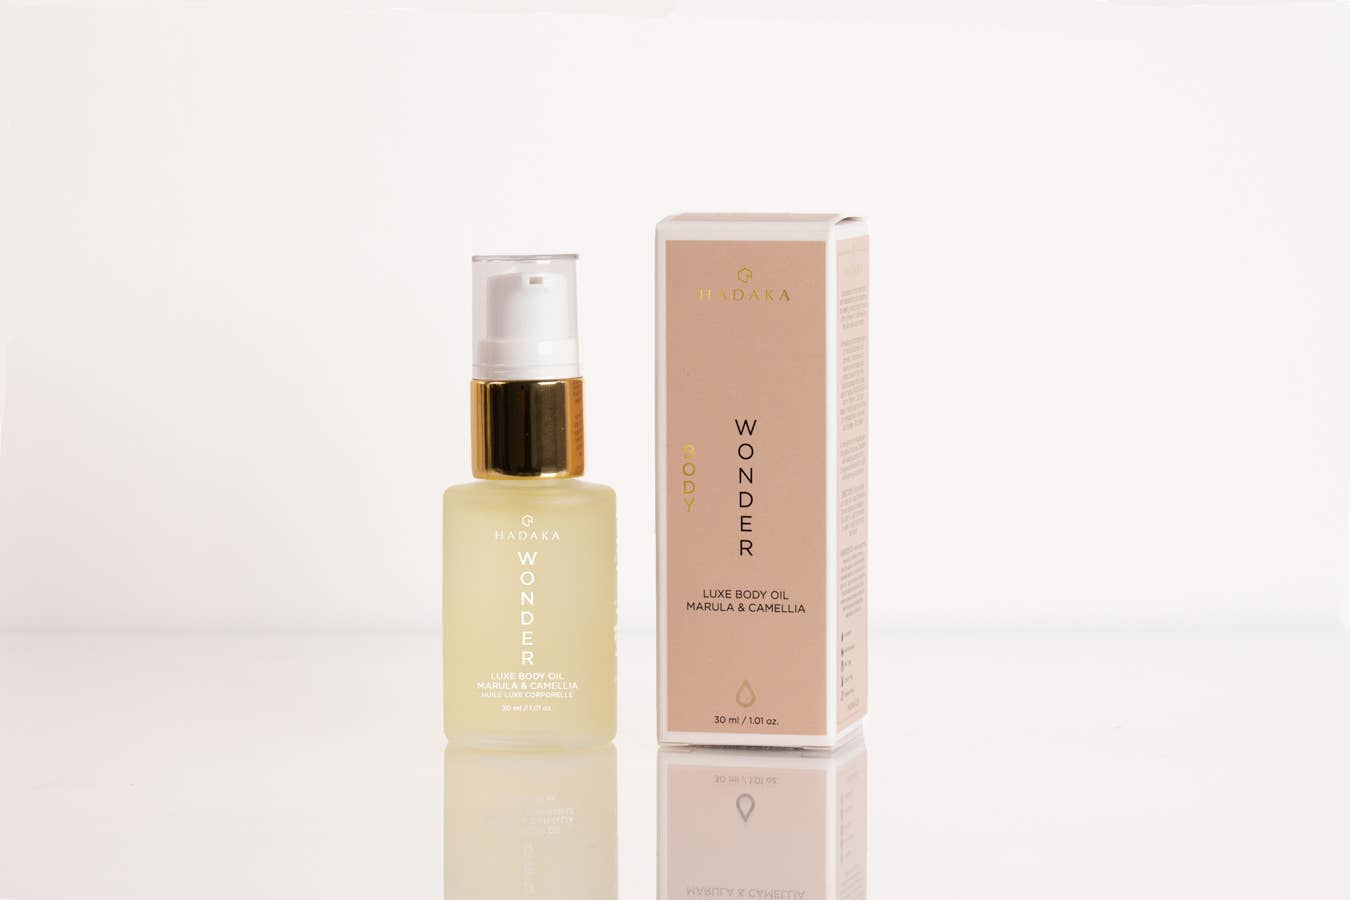 WONDER Luxe Body Oil - 30ml